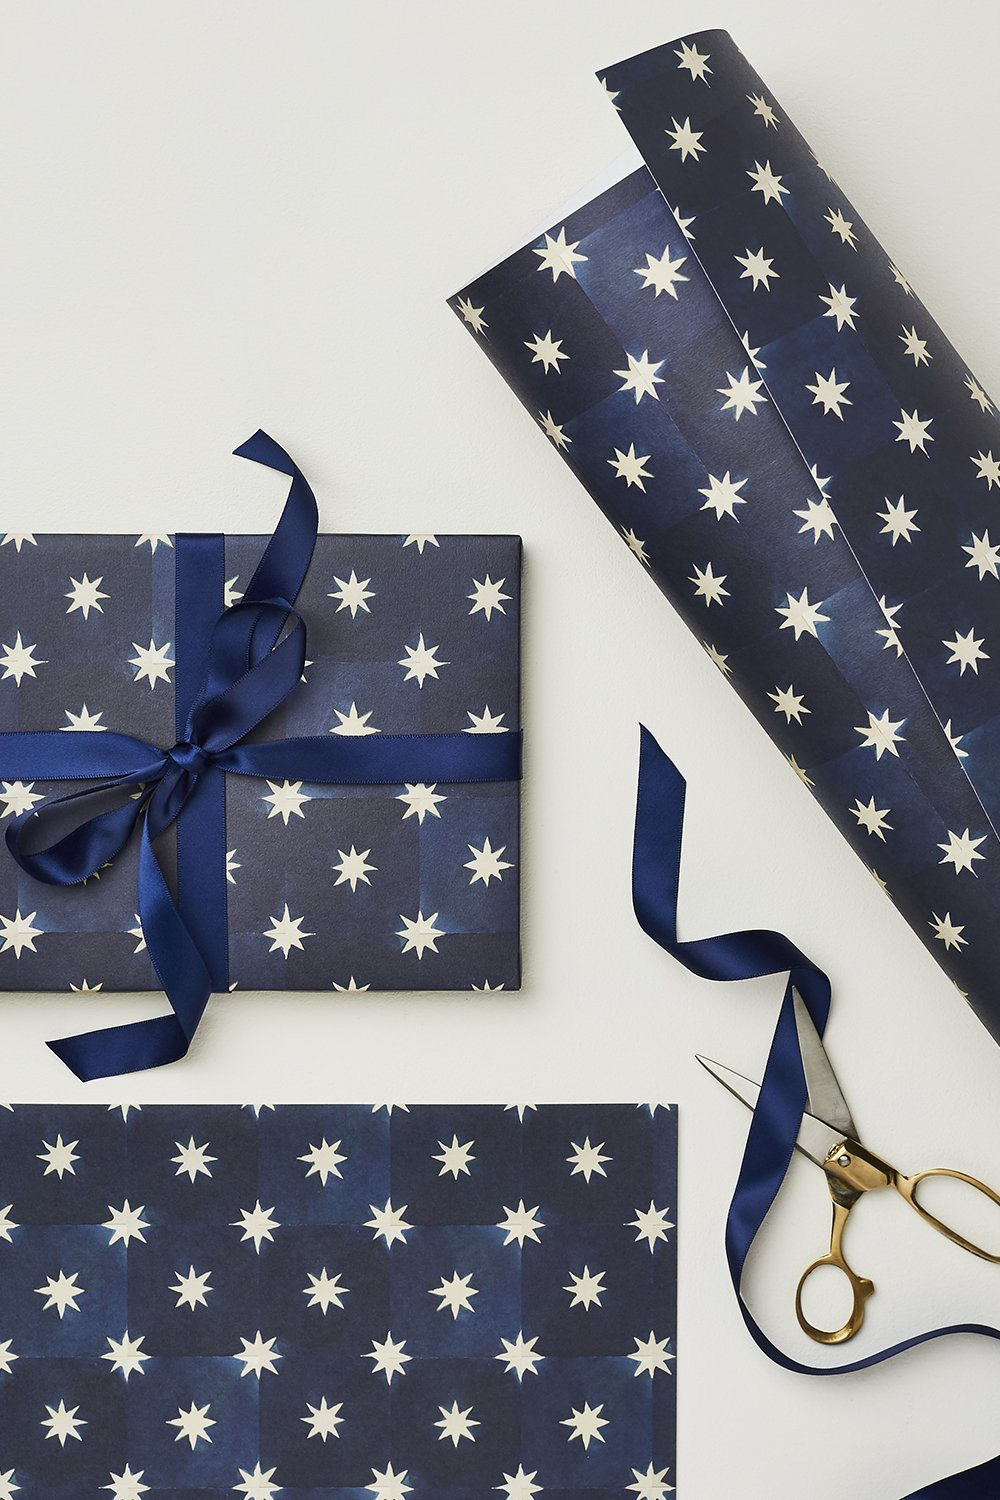 Wanderlust Paper - Gift Wrap Gifts & Stationery Wanderlust Paper